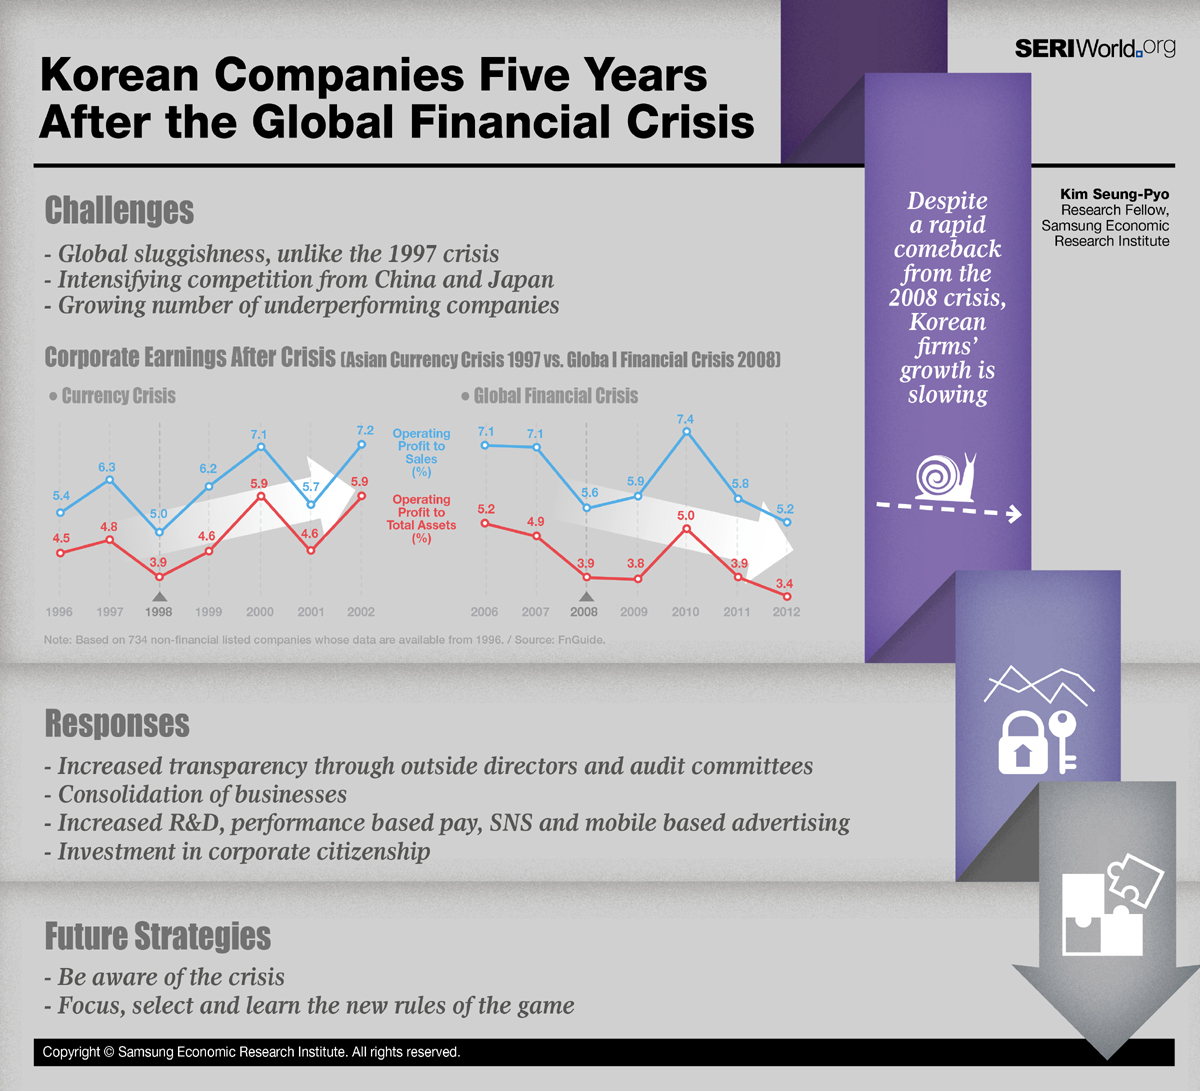 Korea Companies Five Years After the Global Financial Crisis